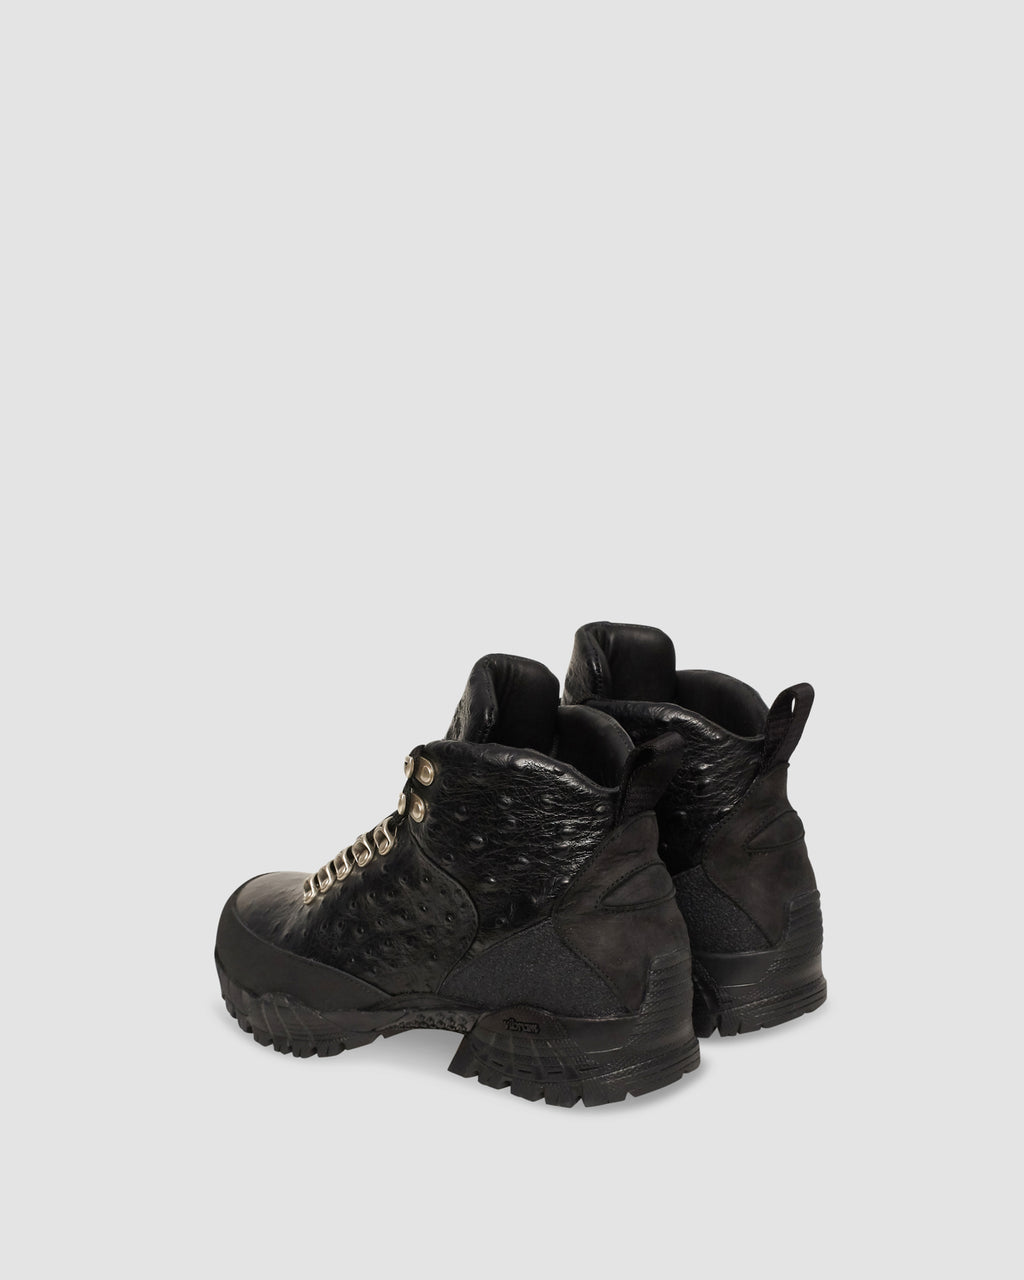 OSTRICH HIGH HIKING BOOT